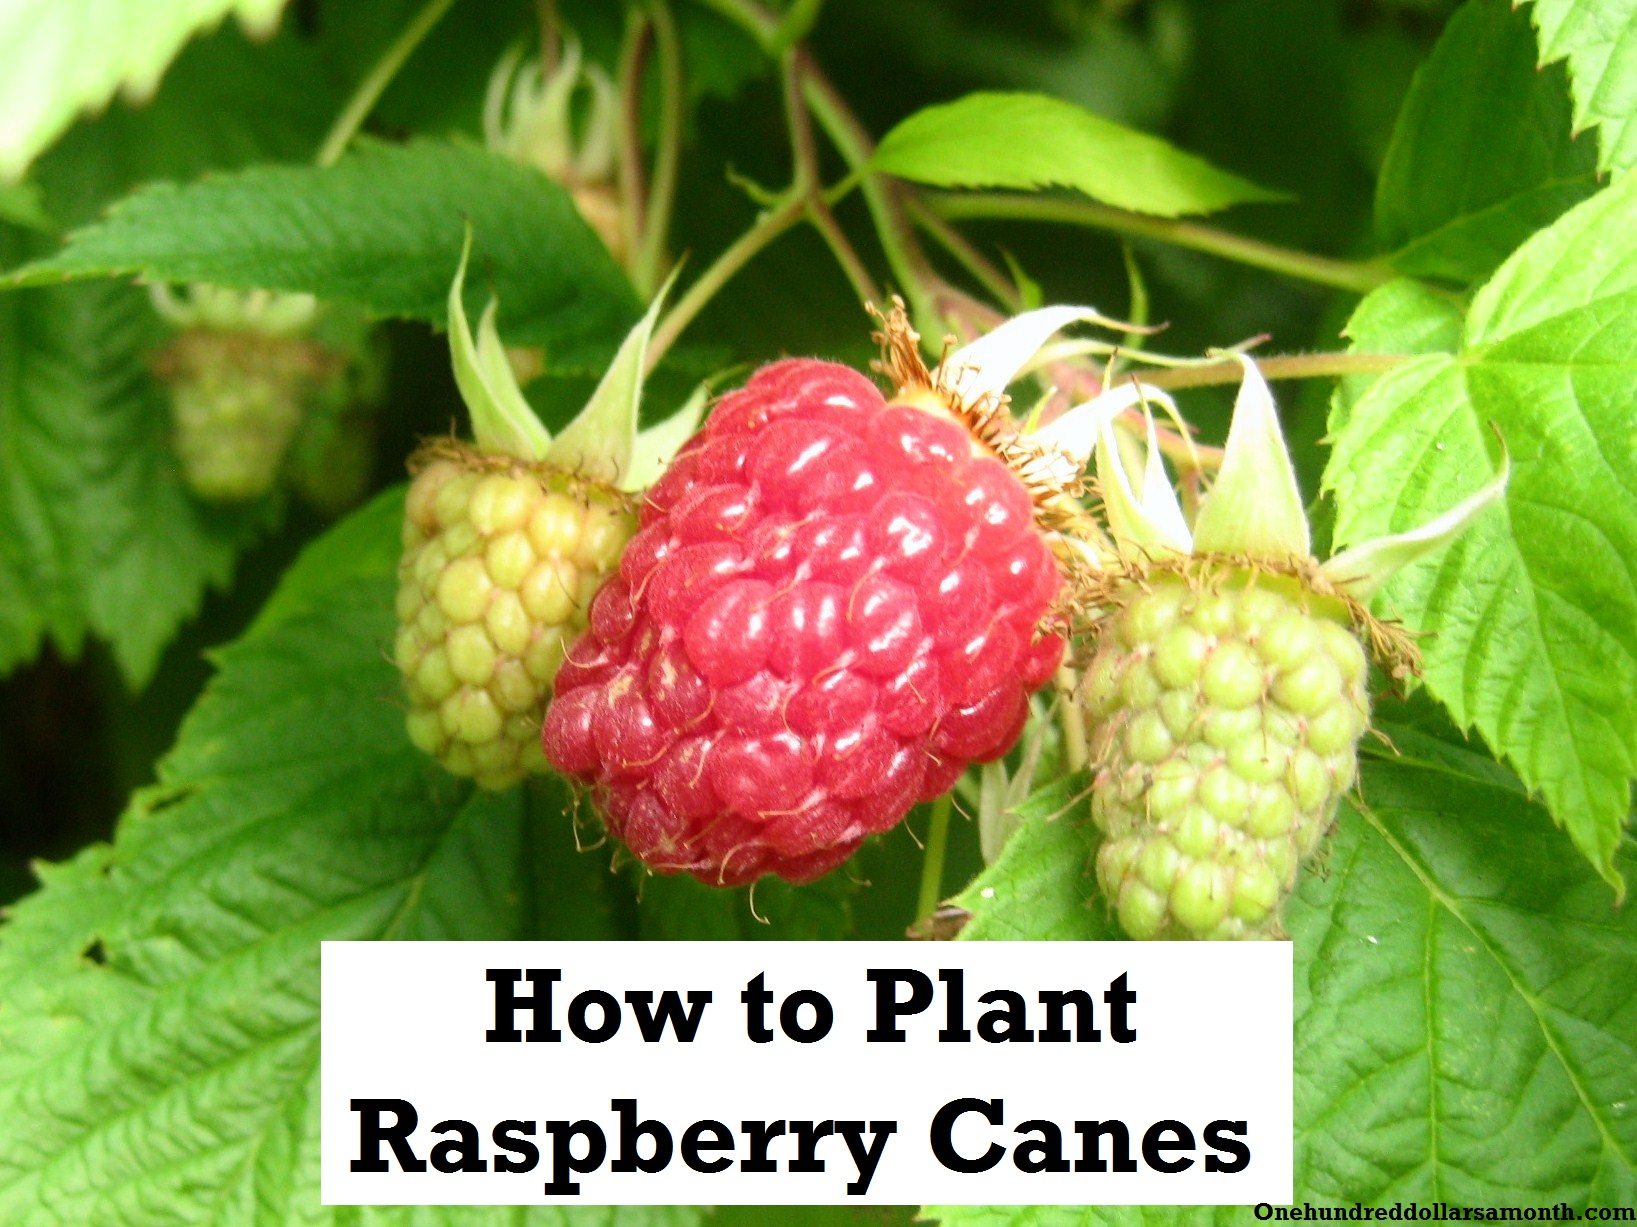 How to Grow Your Own Food: How to Plant Raspberries / Raspberry Canes